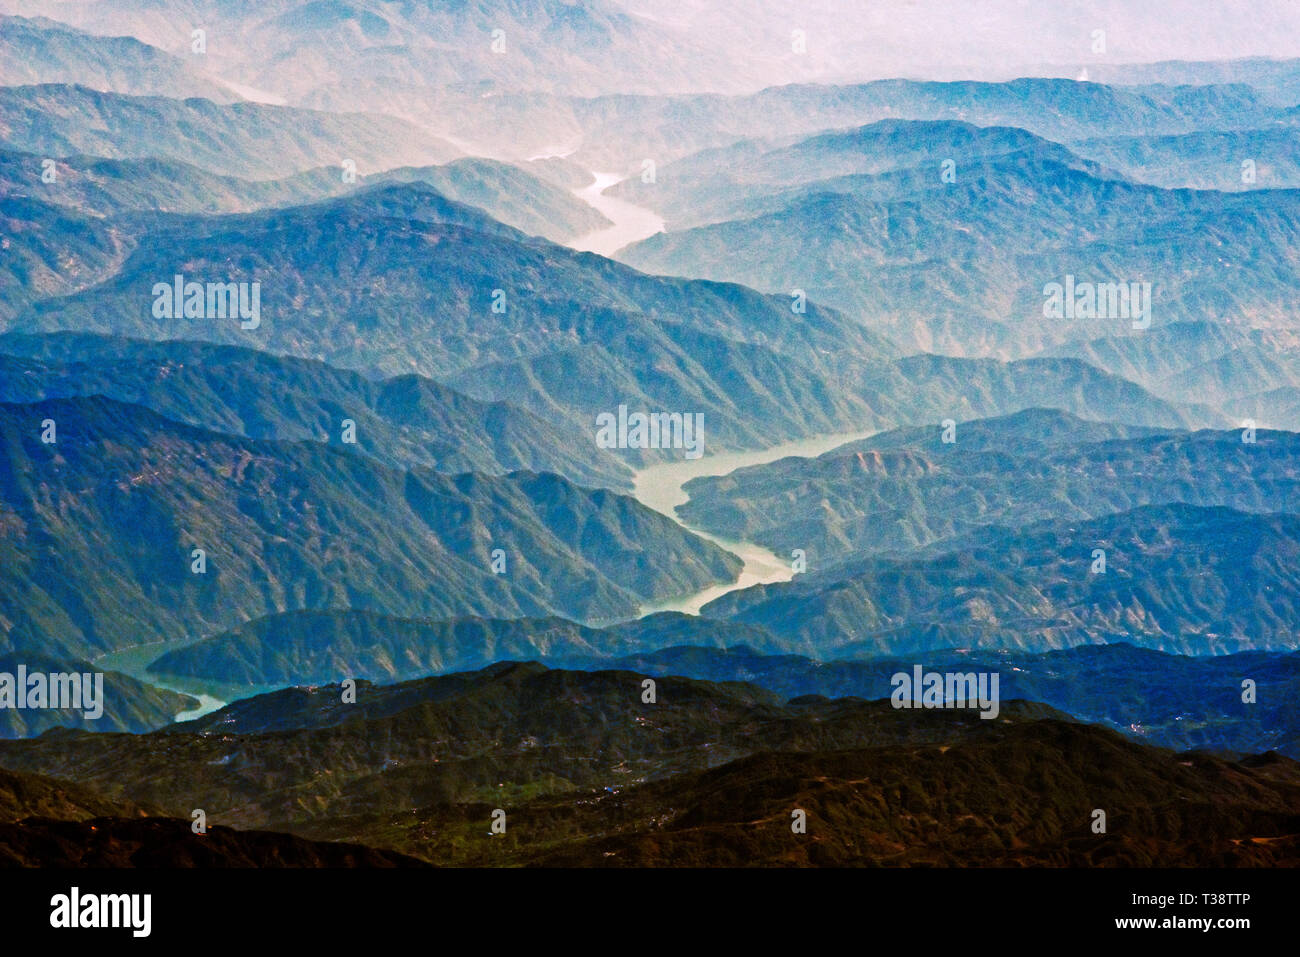 Aerial view of Irrawaddy River winding through the mountain, Myanmar - Stock Image